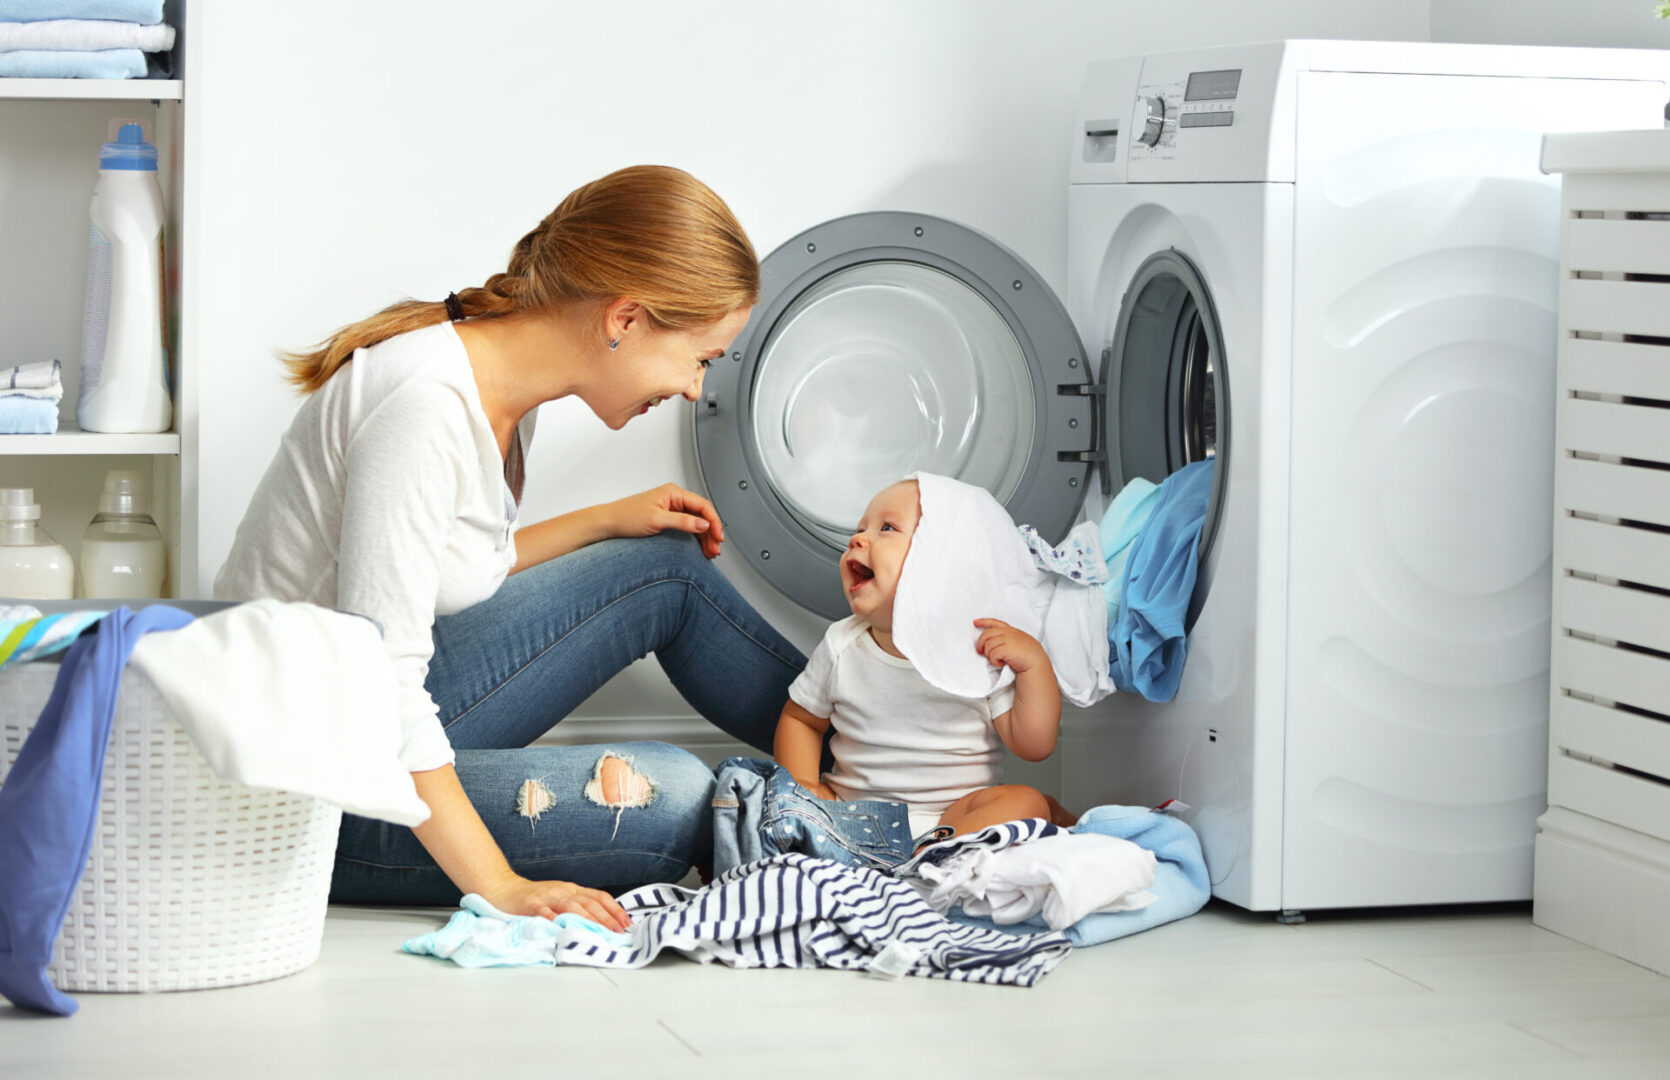 Mother,A,Housewife,With,A,Baby,Engaged,In,Laundry,Fold